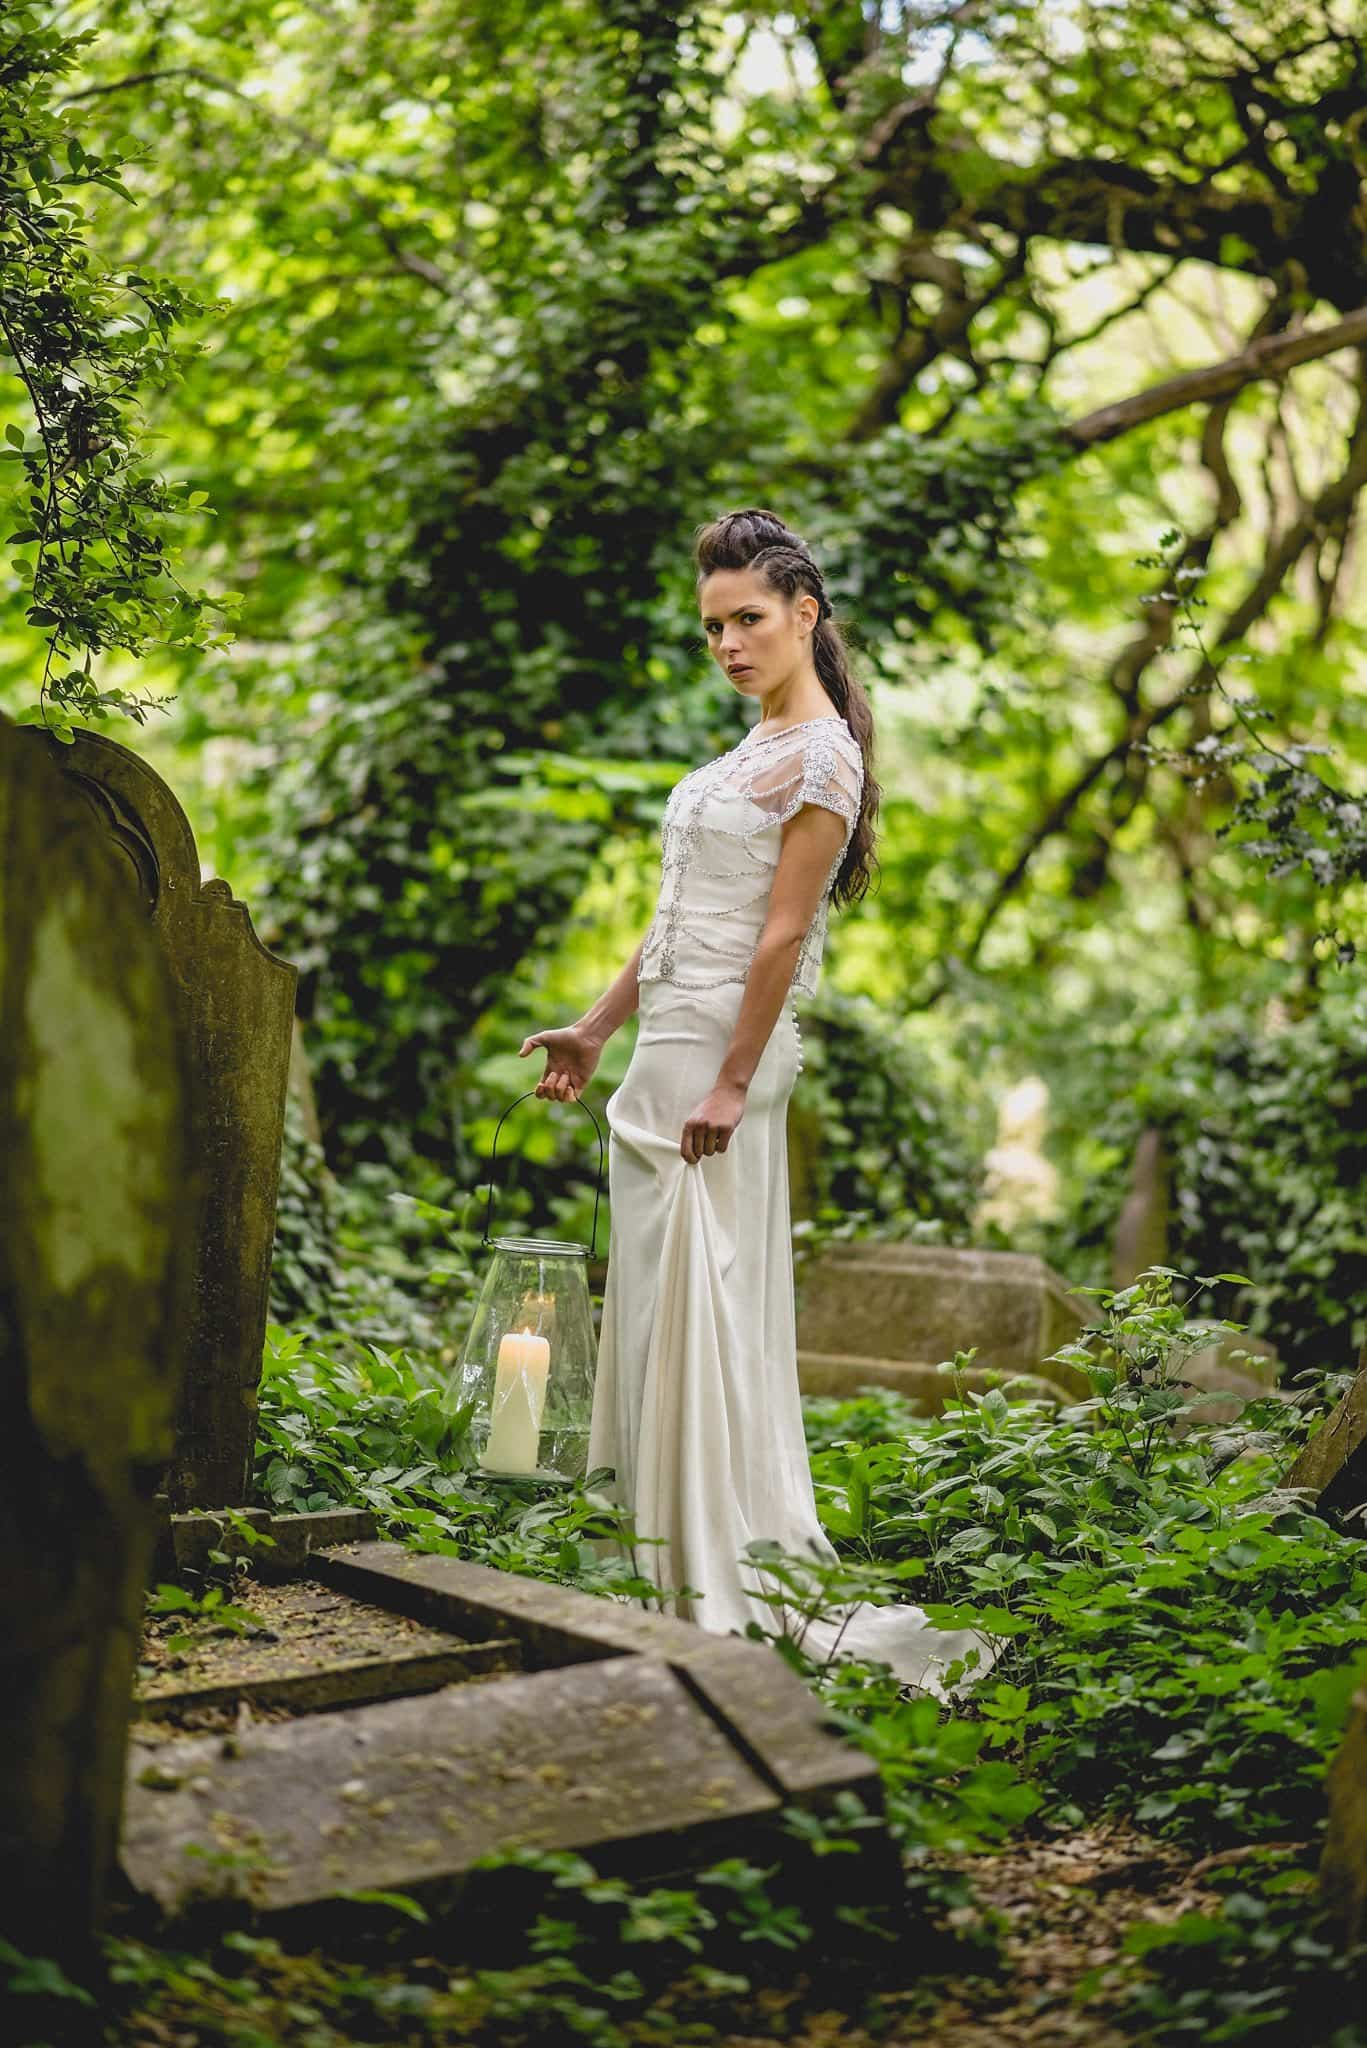 Bride stands among the graves in Abney Park, holding a lantern